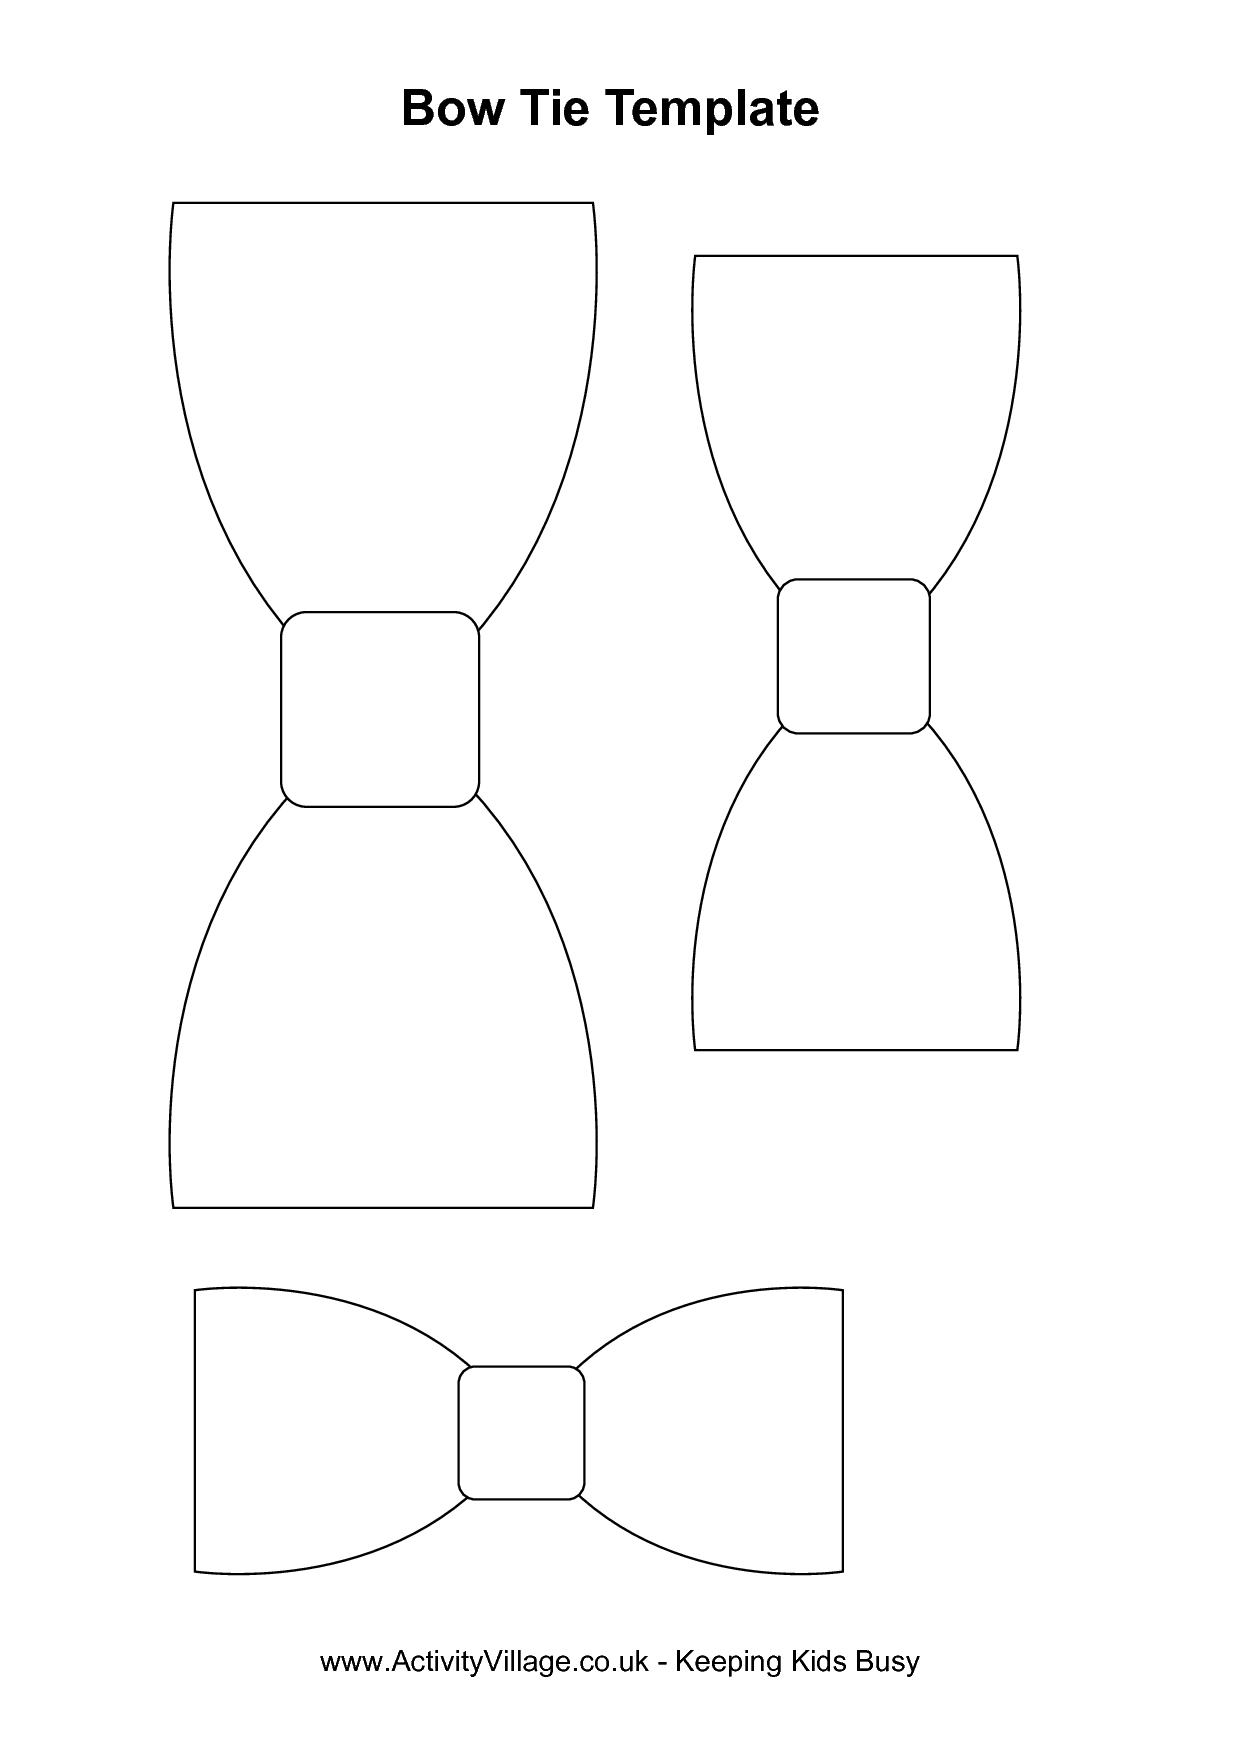 Free Coloring Pages | Mad Scientist Party In 2019 | Pinterest | Baby - Free Printable Tie Template